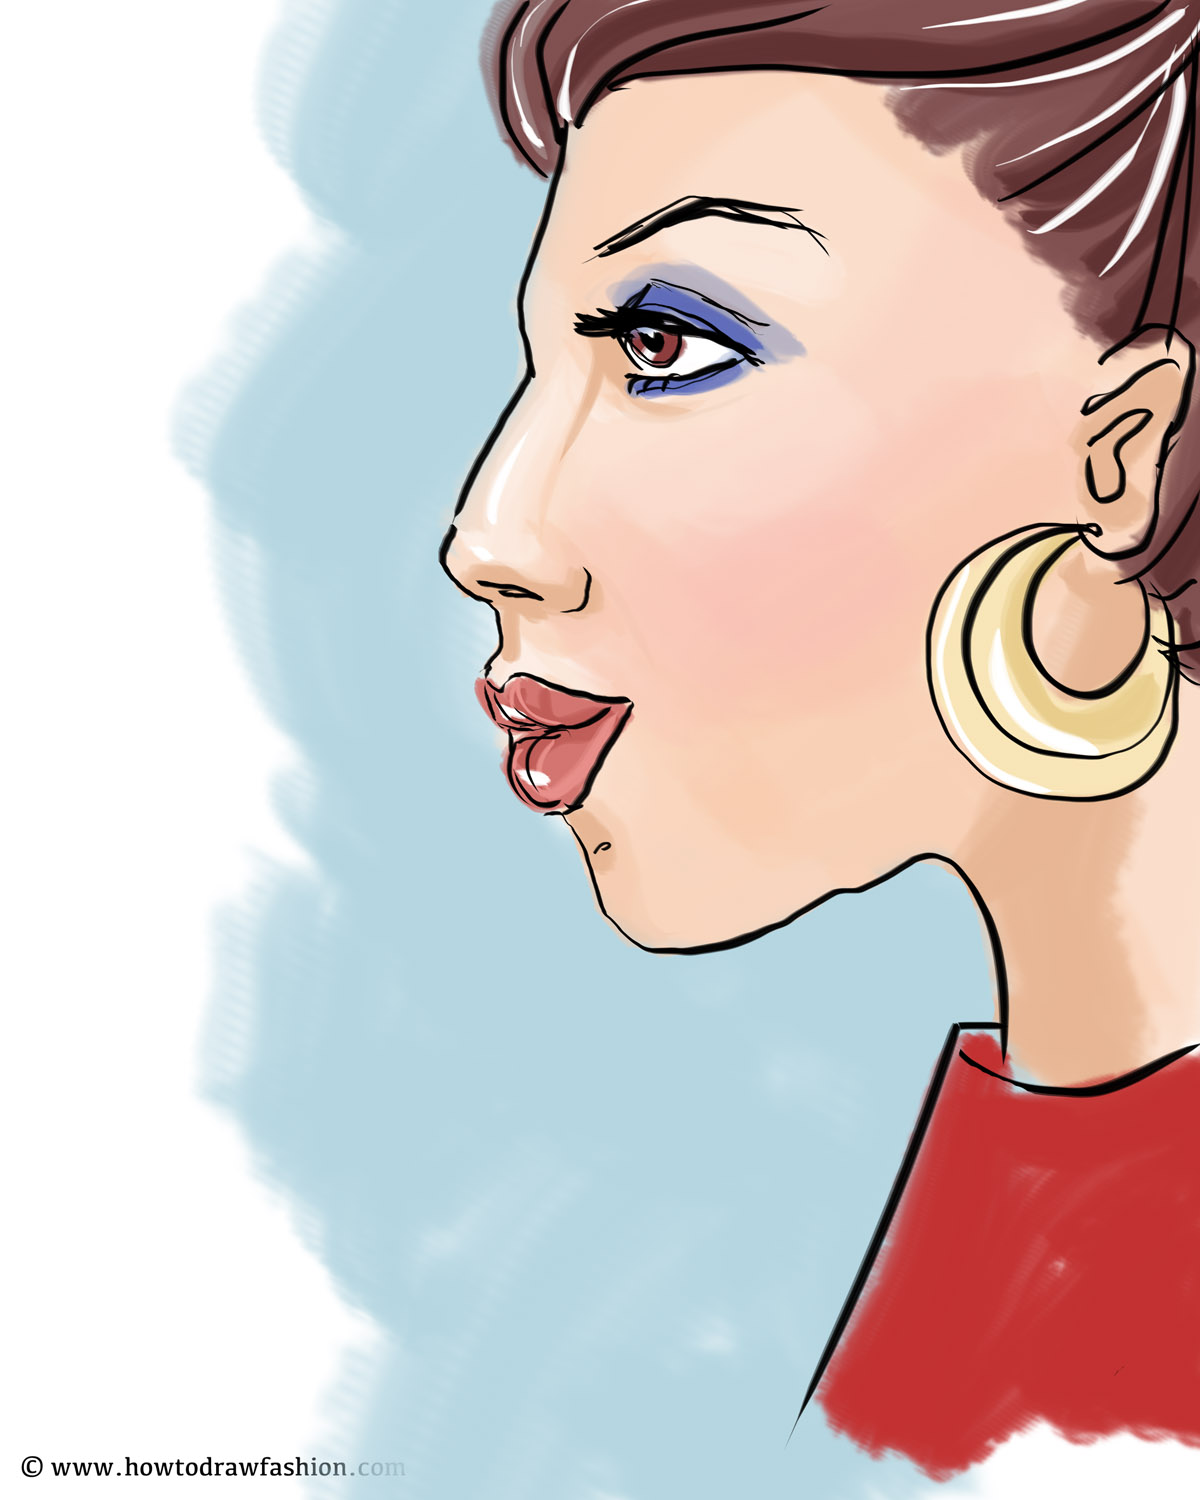 How To Draw Fashion Fashion Profile